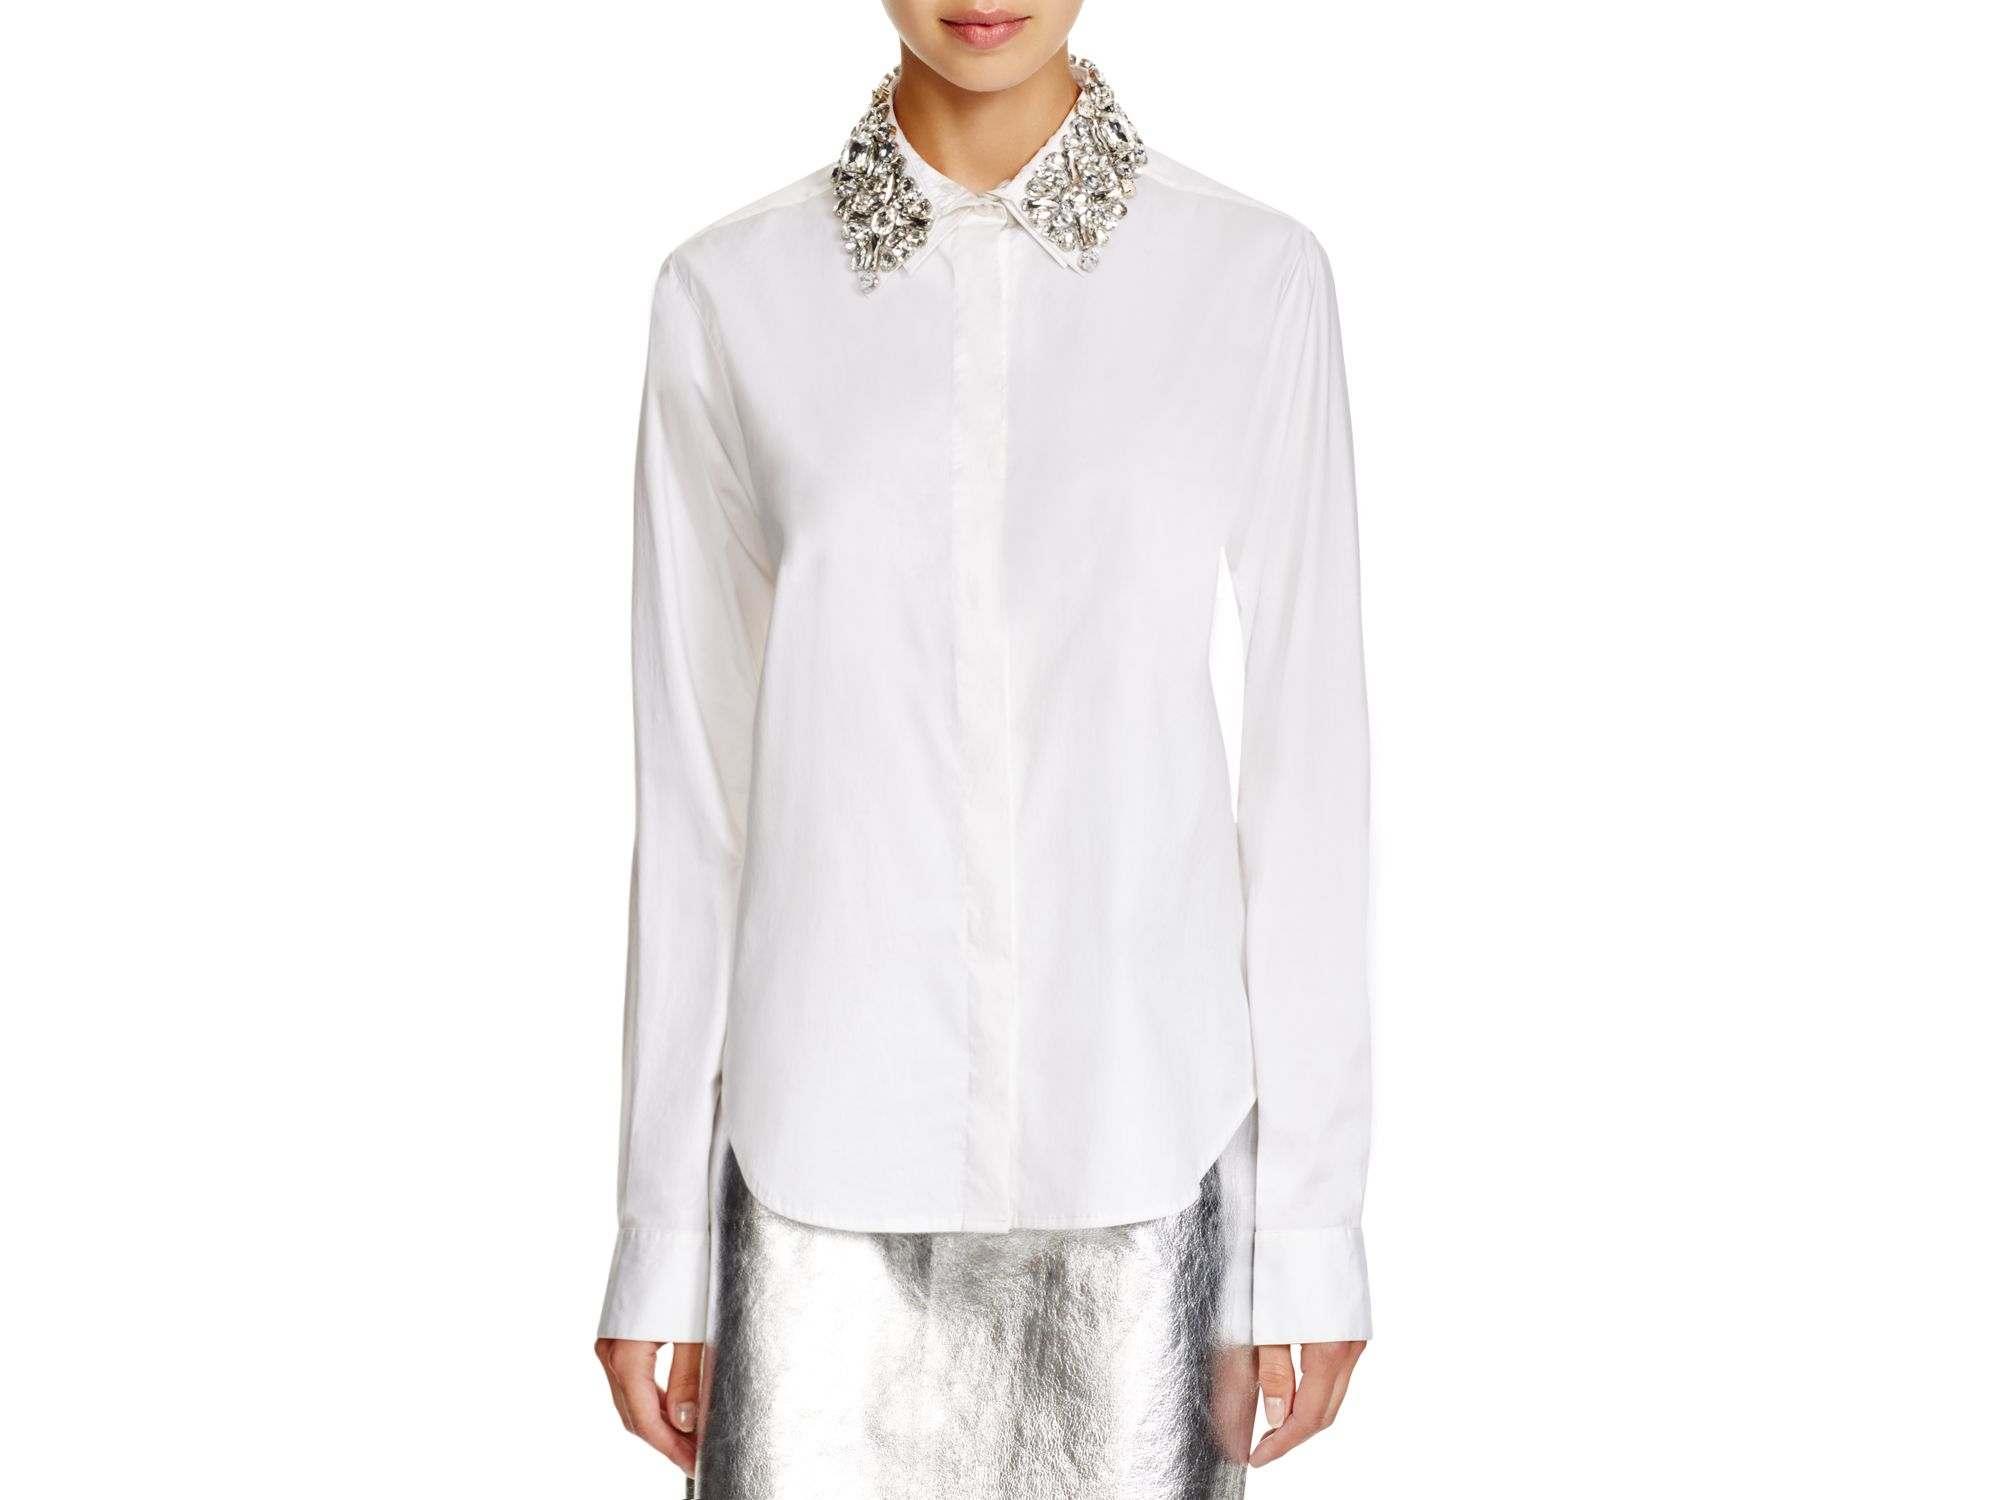 Lyst Dkny Button Down Shirt With Embellished Collar In White